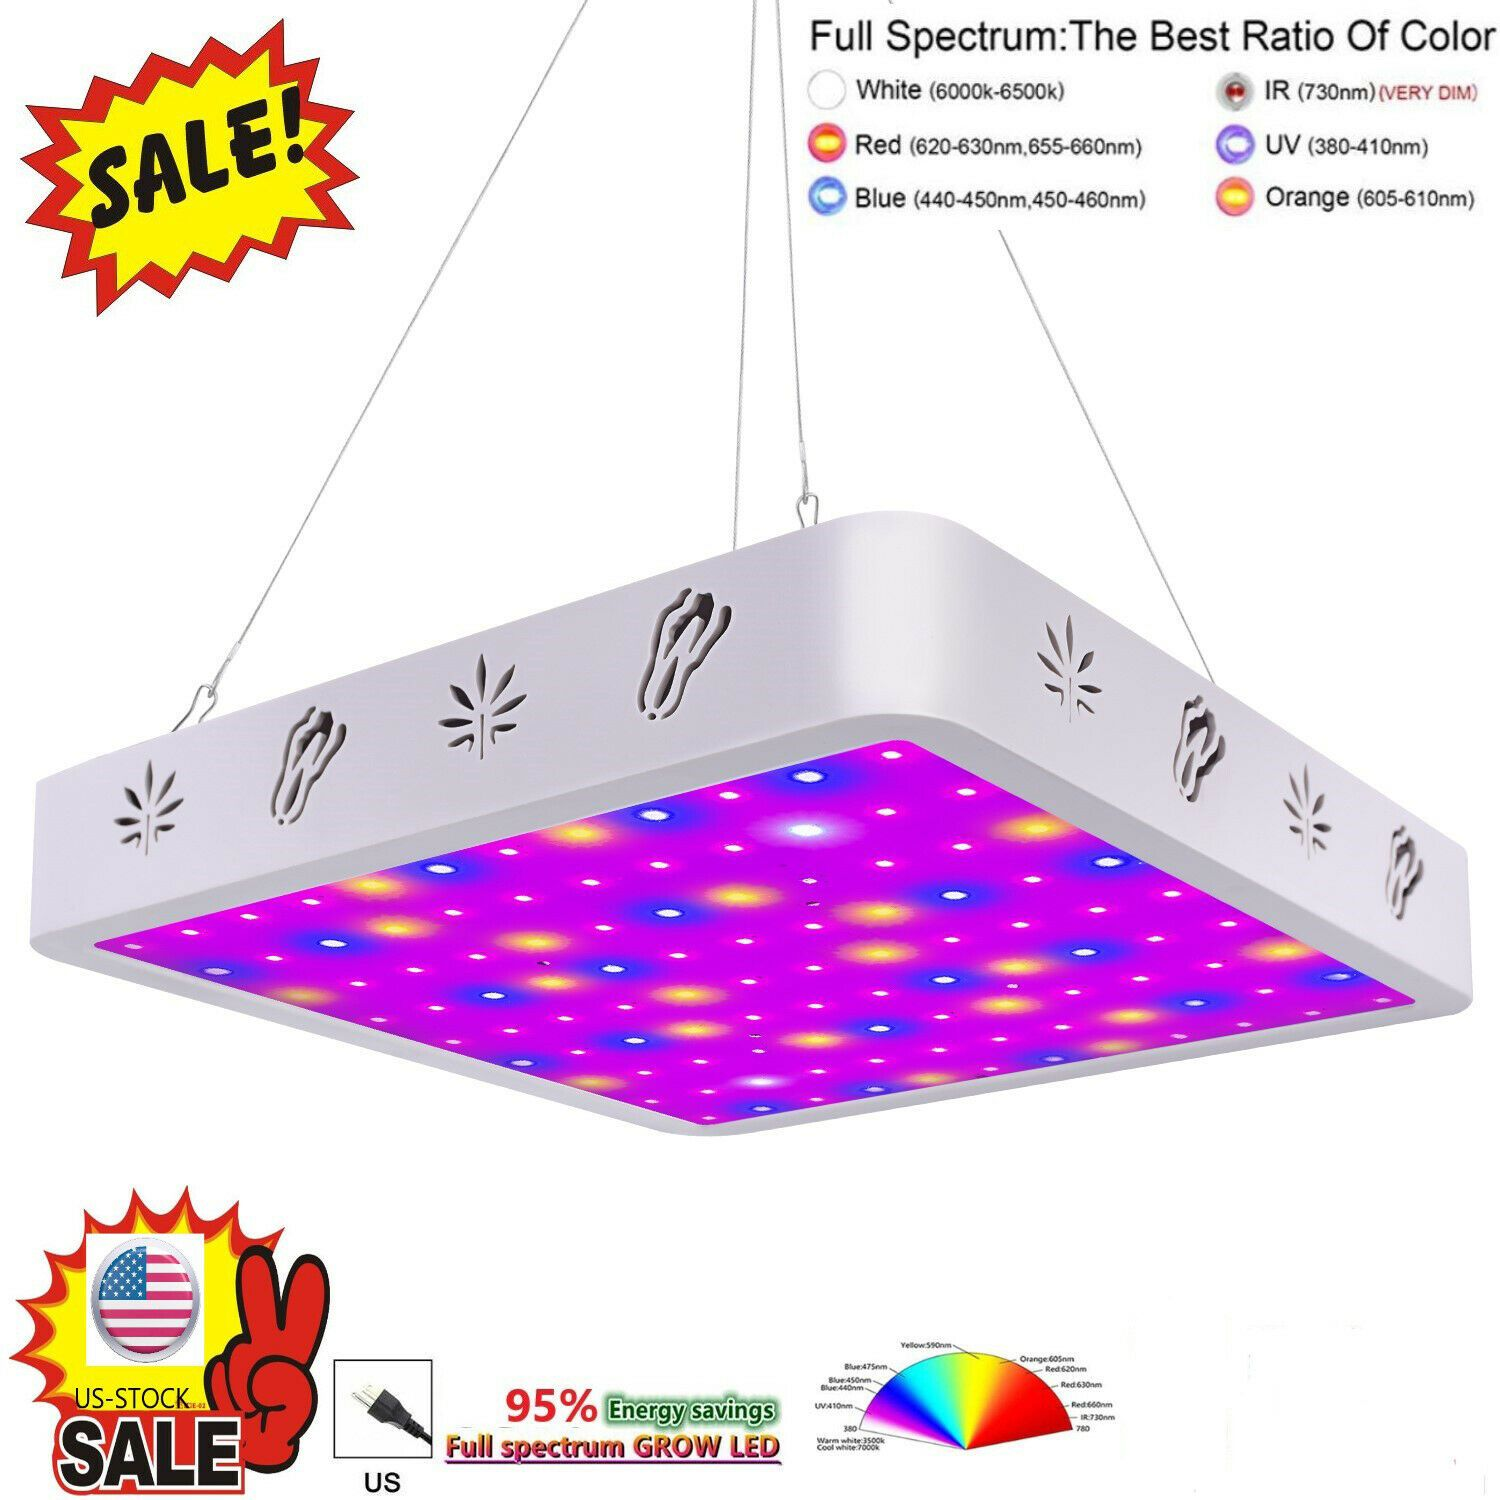 V99grow 1000w Led Grow Light Panel Lamp Full Spectrum Hydroponic Plant Growing G In 2020 With Images Led Grow Lights Hydroponic Plants Hydroponics